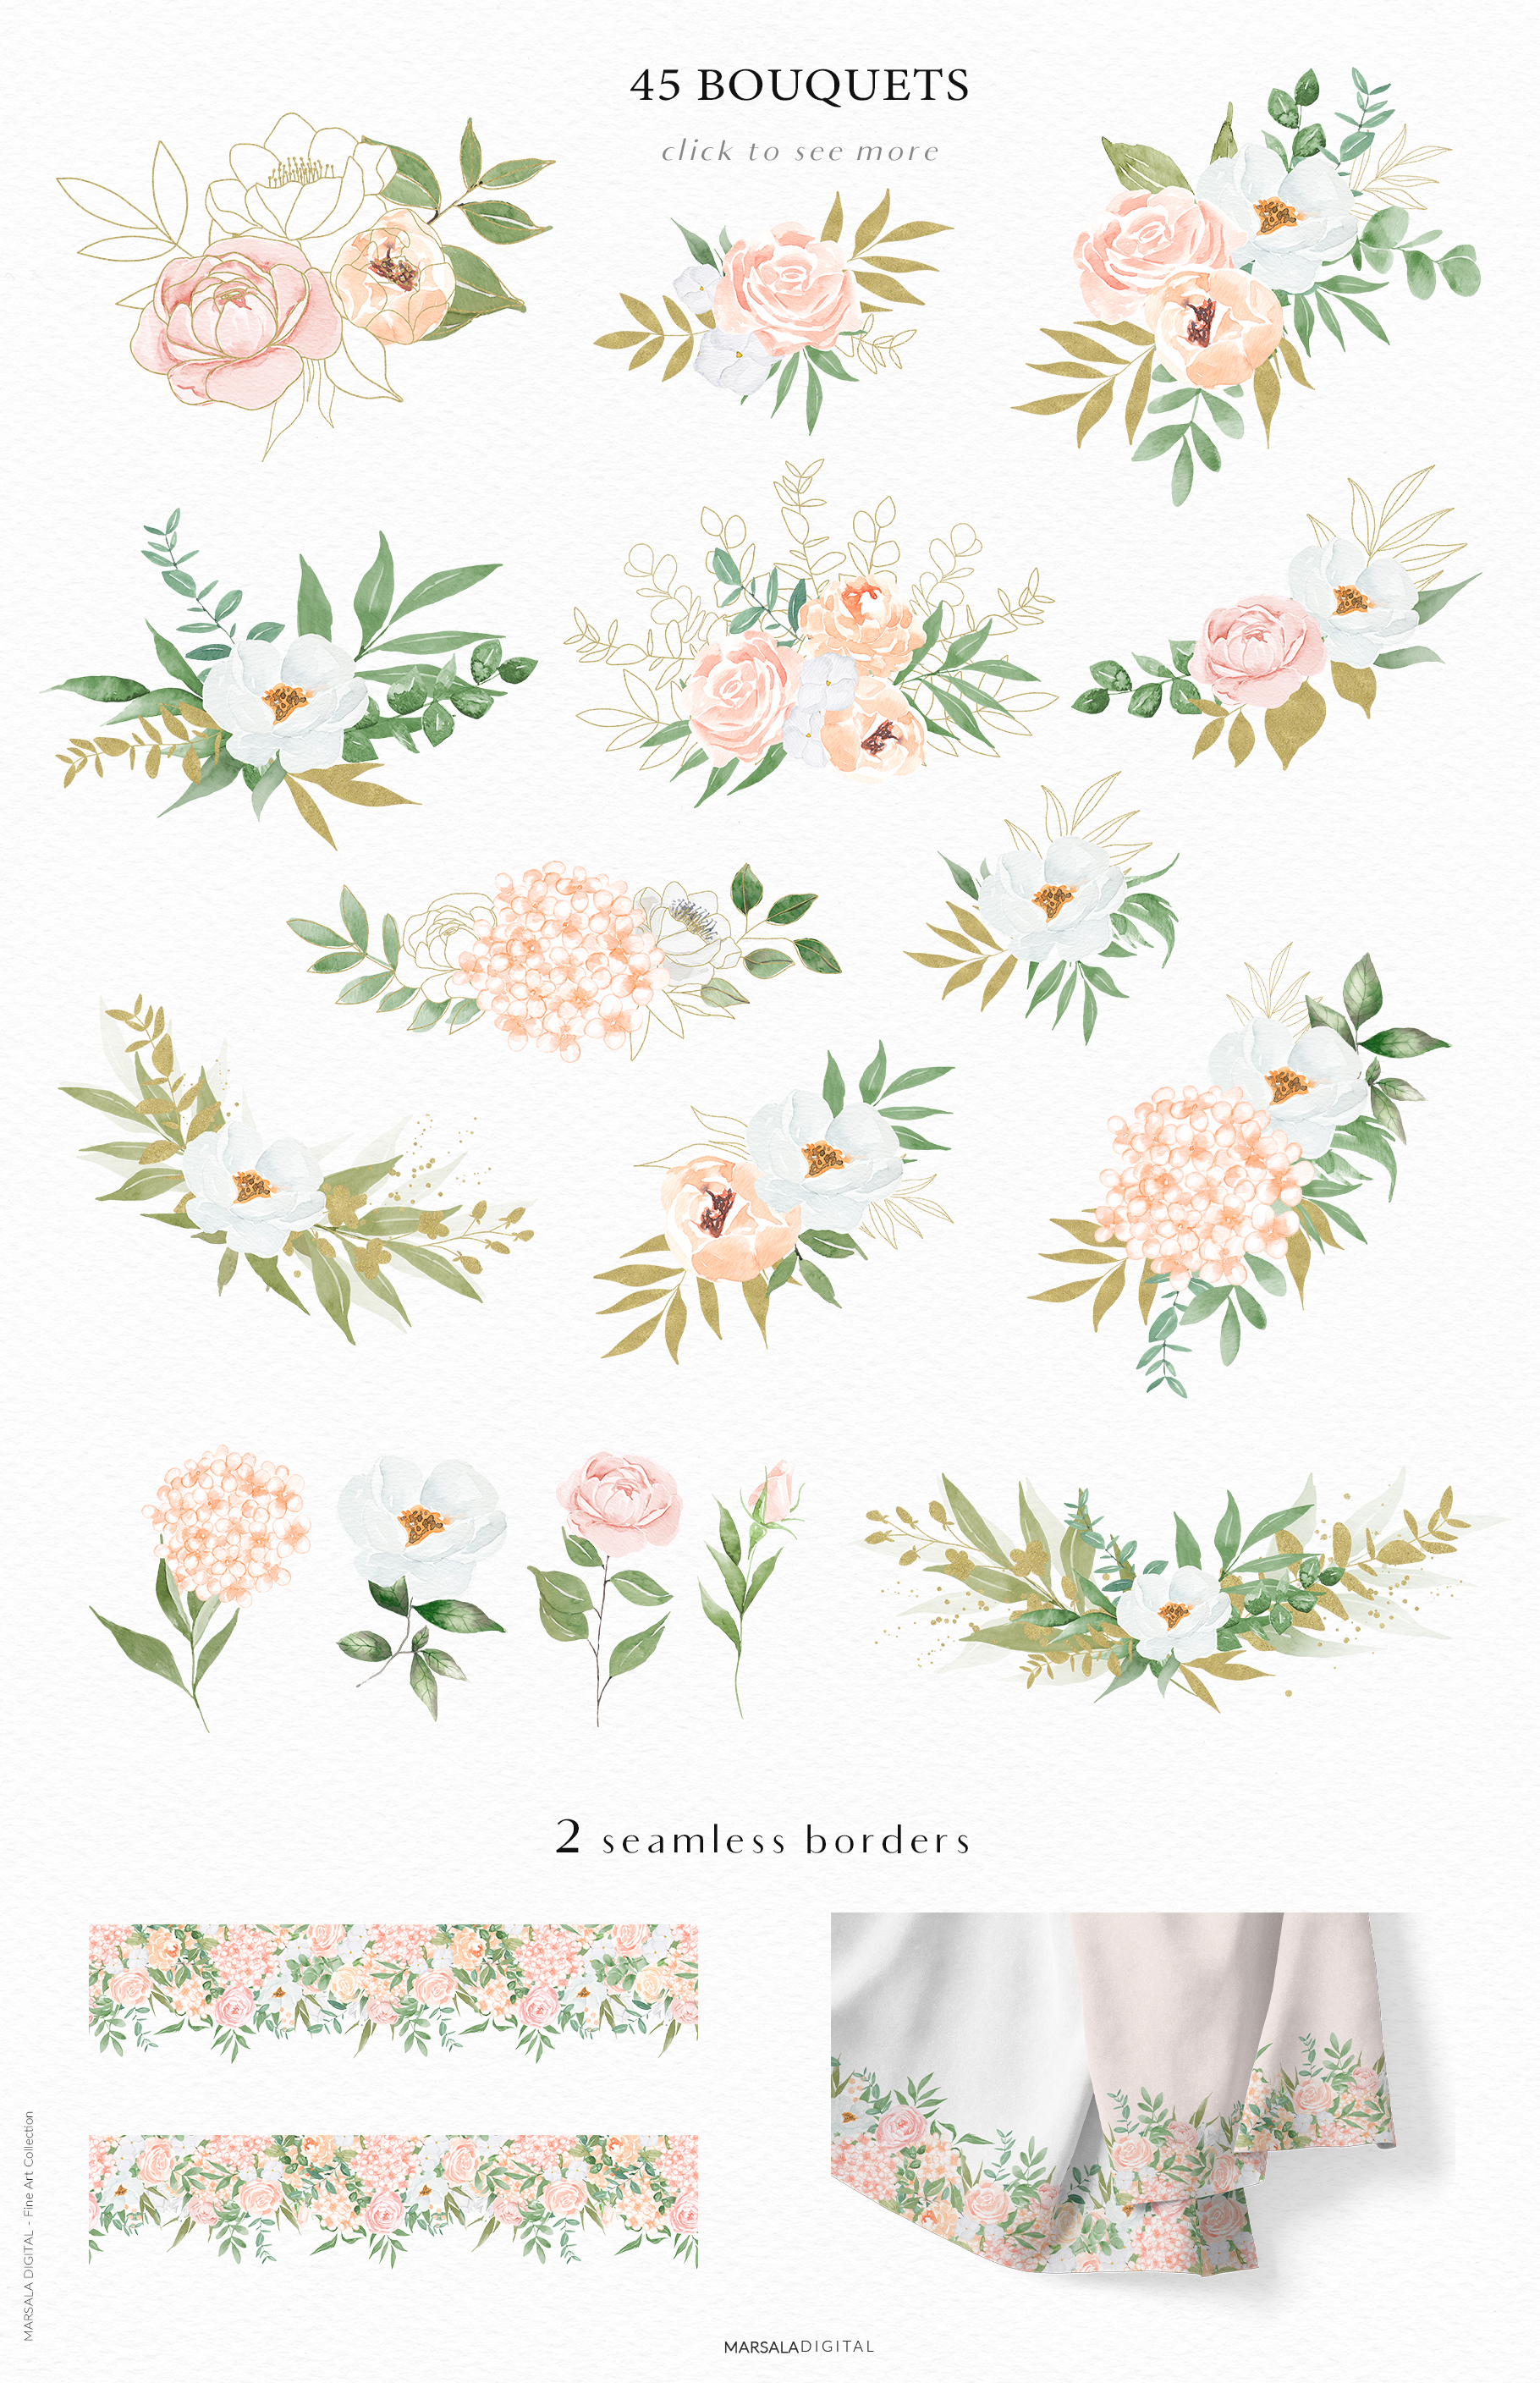 Watercolor Flowers Watercolor Florals Peach & White example image 3